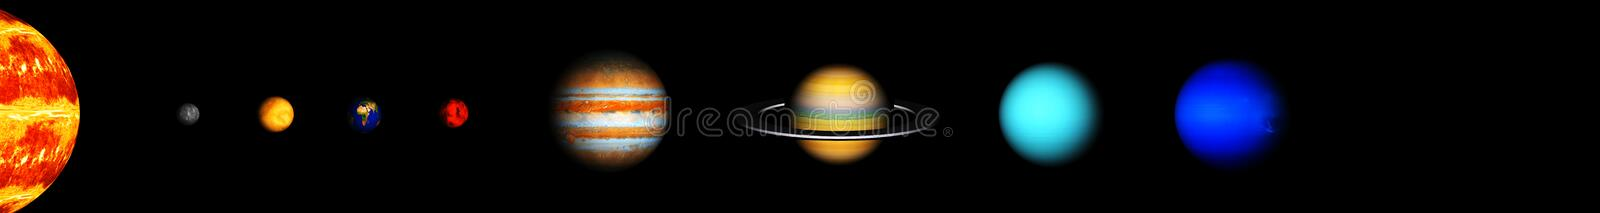 Our eight planets of the solar system stock photo